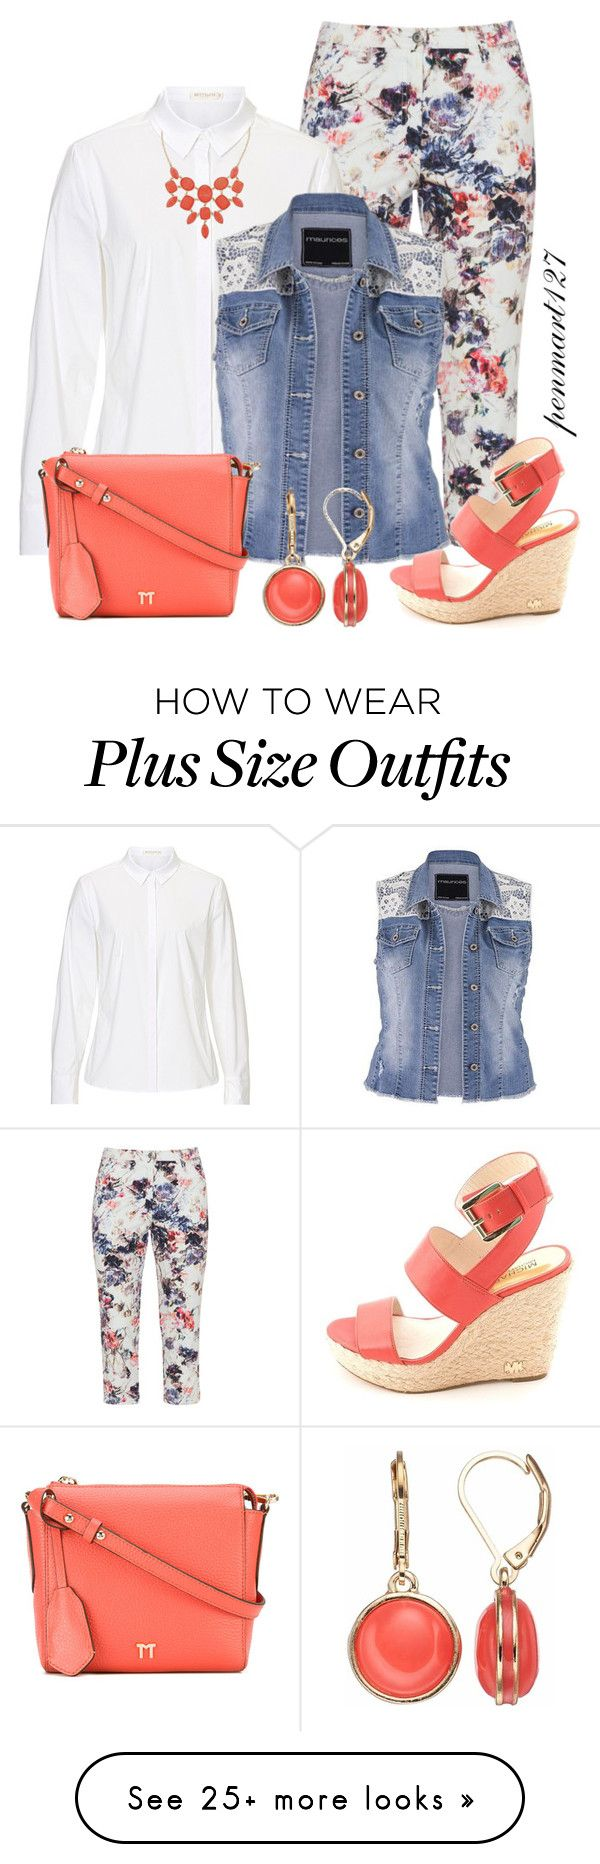 """""""White Shirt for Spring #Plussize"""" by penny-martin on Polyvore featuring KJ Brand, MICHAEL Michael Kors, Tila March, Monet and Napier"""